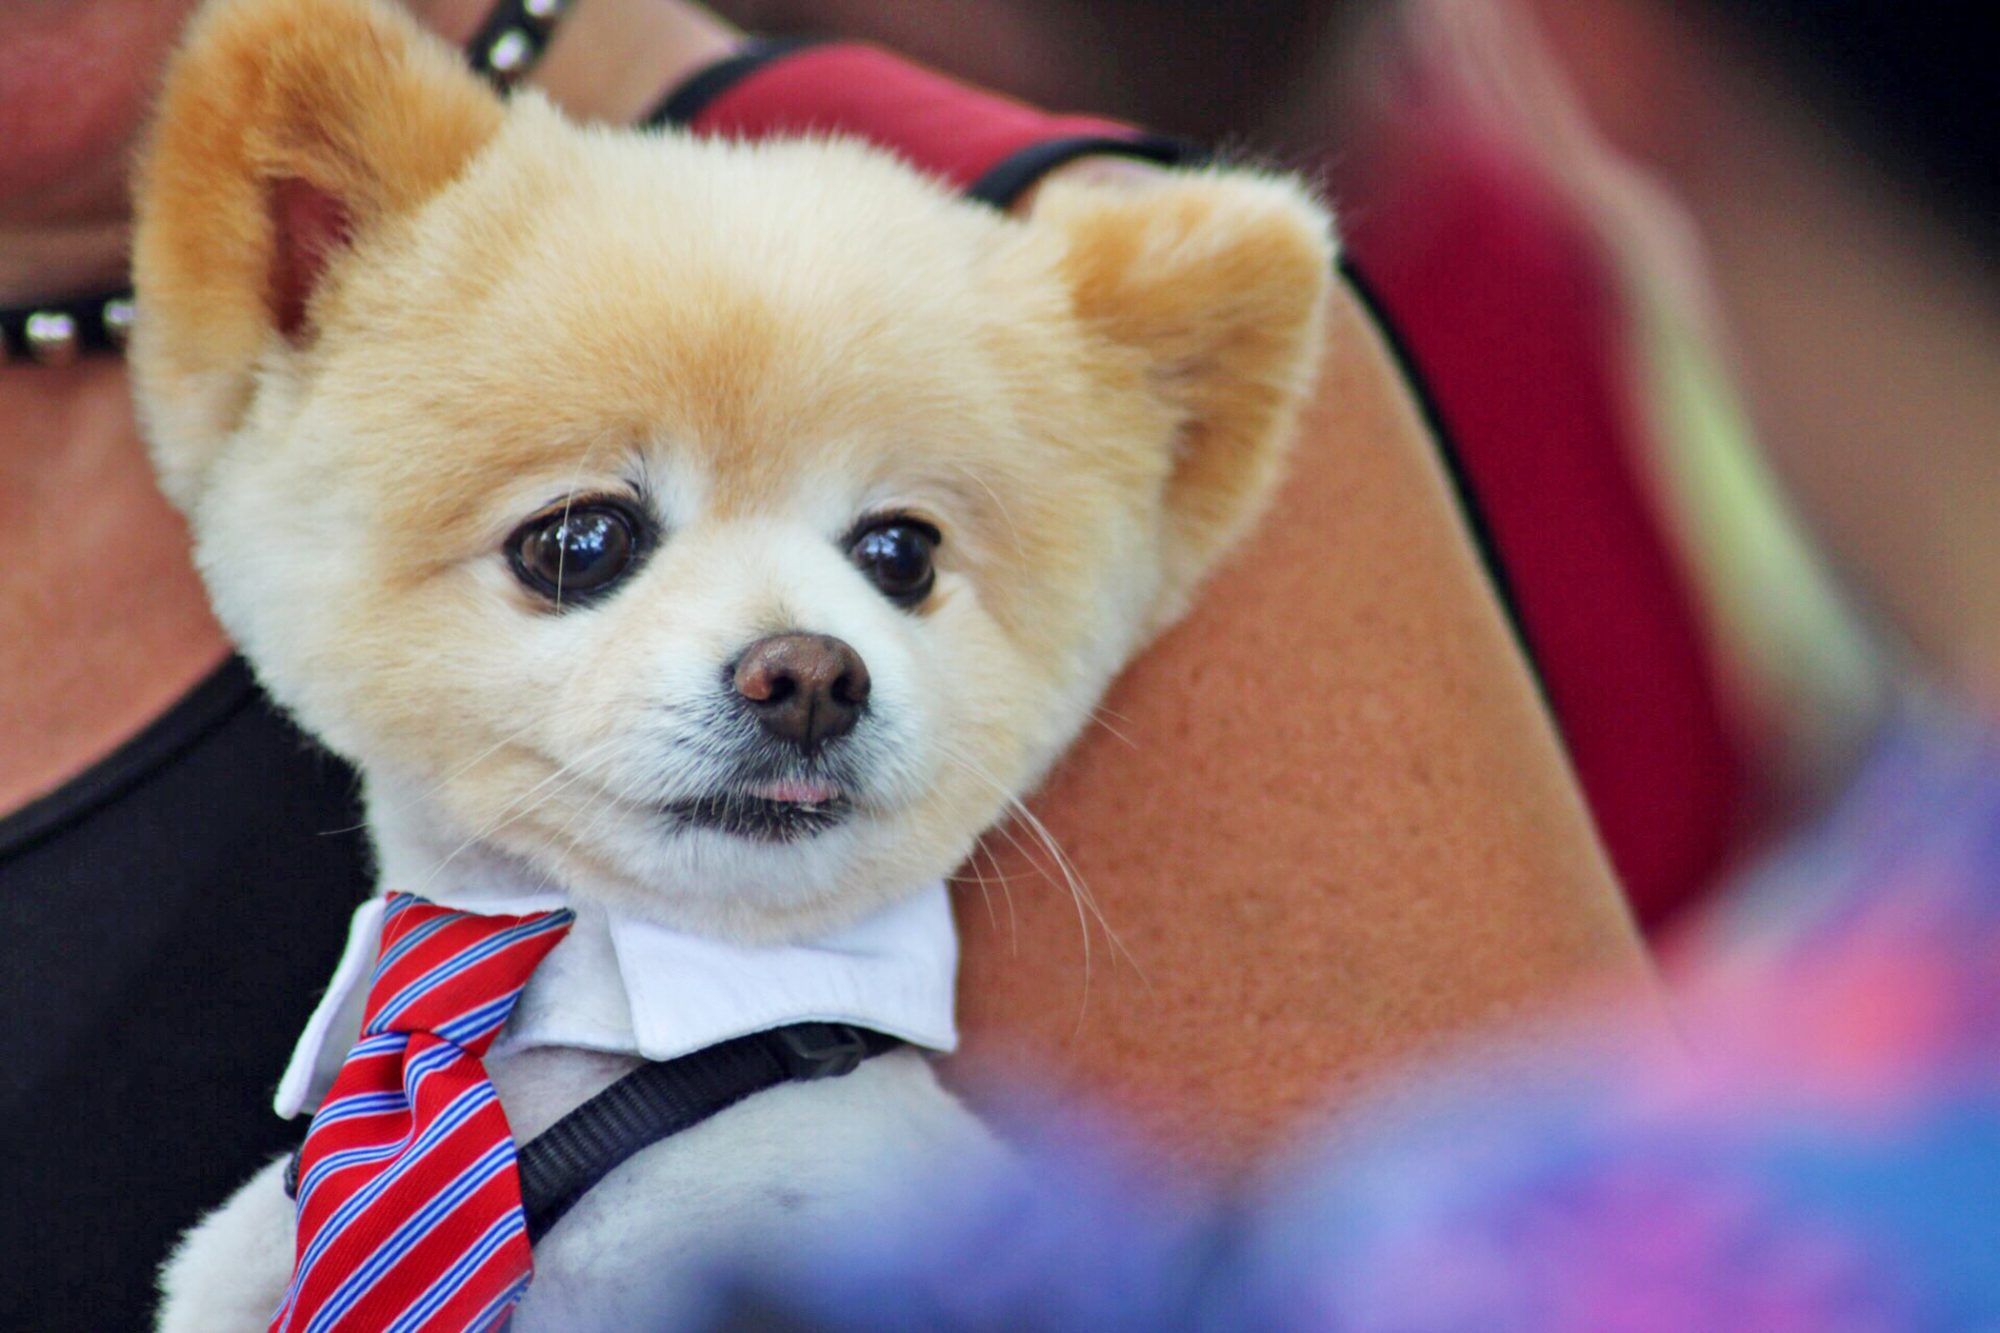 groomed Pomeranian wearing collar and tie